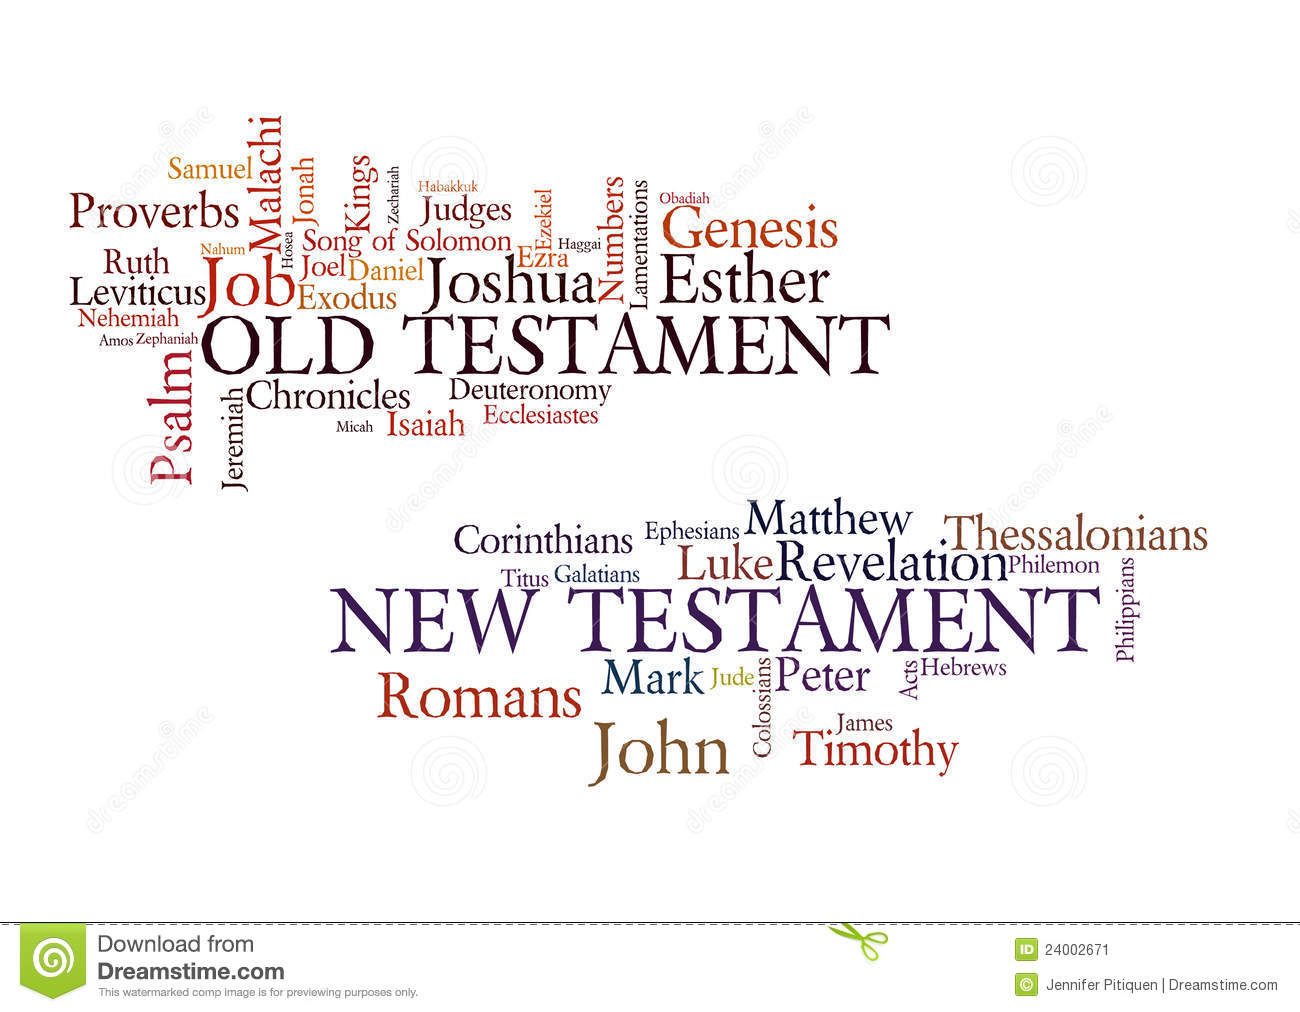 Jesus Christ Was the God of the Old Testament